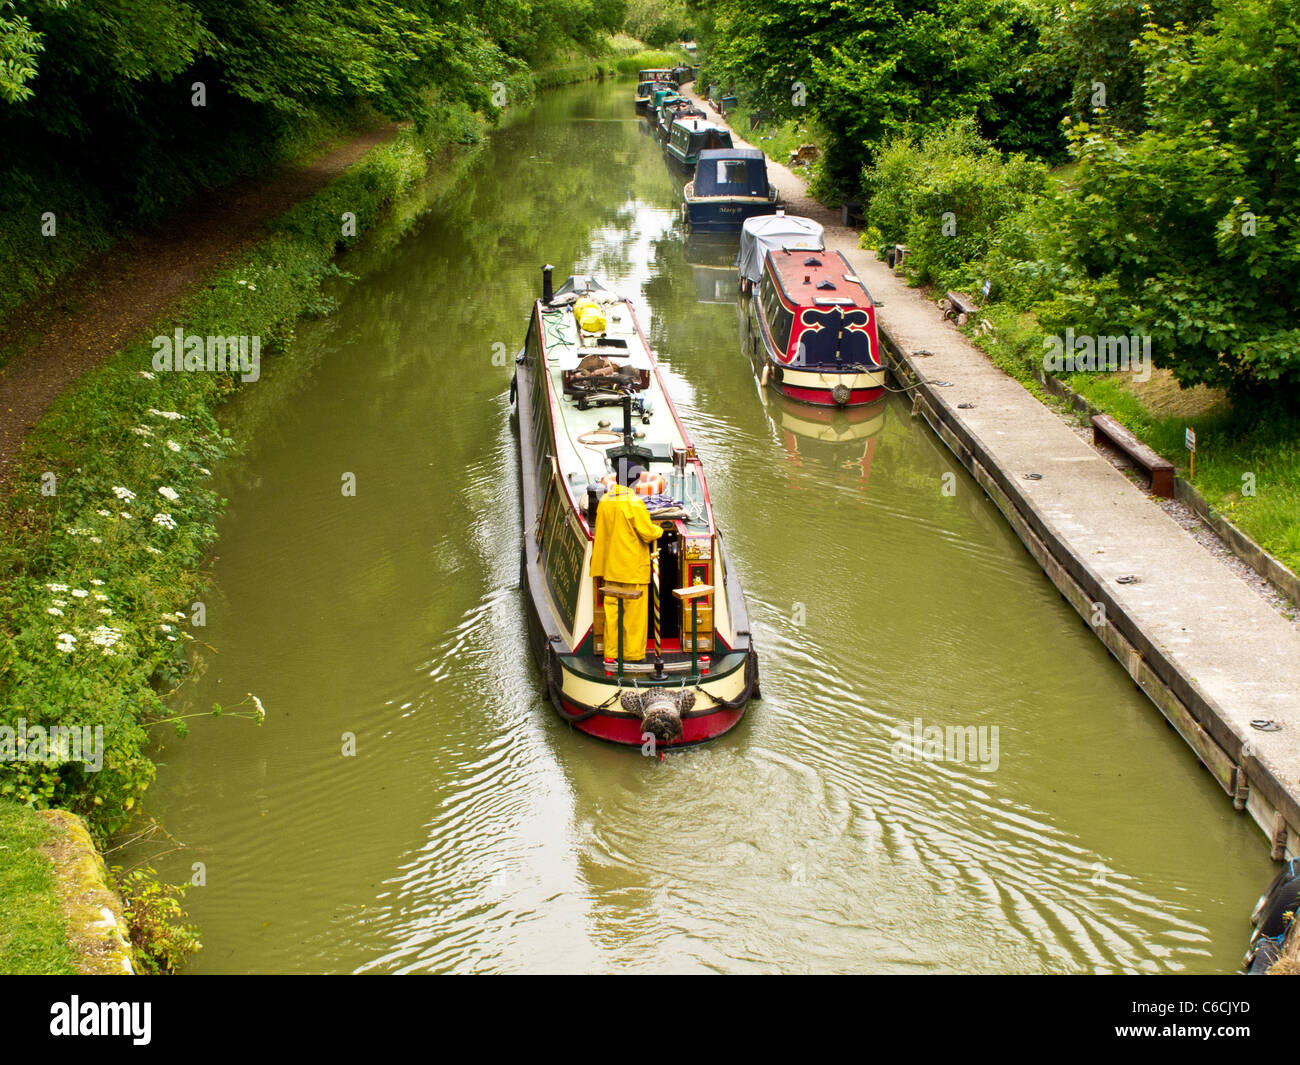 A canal scene with narrowboats near Pewsey Wharf on the Kennet and Avon Canal in Wiltshire, England, UK - Stock Image